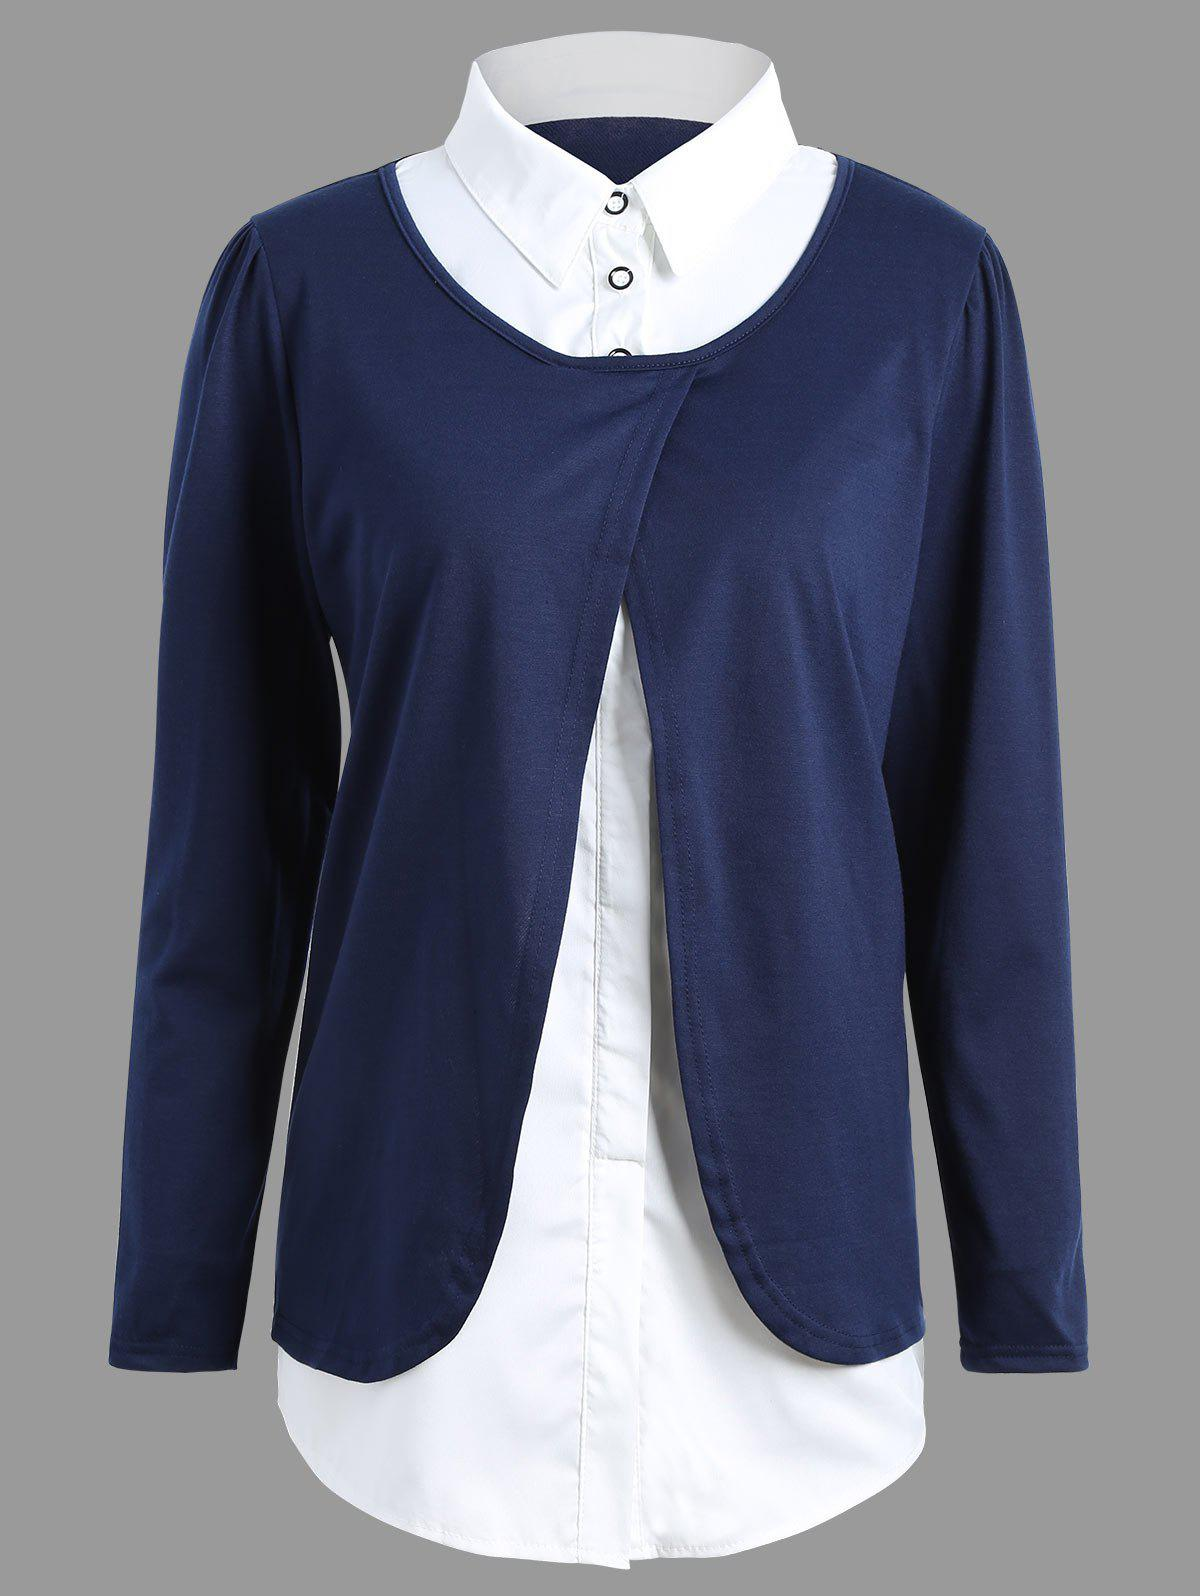 Plus Size Overlay Slit BlouseWOMEN<br><br>Size: 4XL; Color: BLUE; Material: Cotton,Polyester; Shirt Length: Regular; Sleeve Length: Full; Collar: Shirt Collar; Style: Fashion; Season: Fall; Pattern Type: Others; Weight: 0.3300kg; Package Contents: 1 x Blouse;